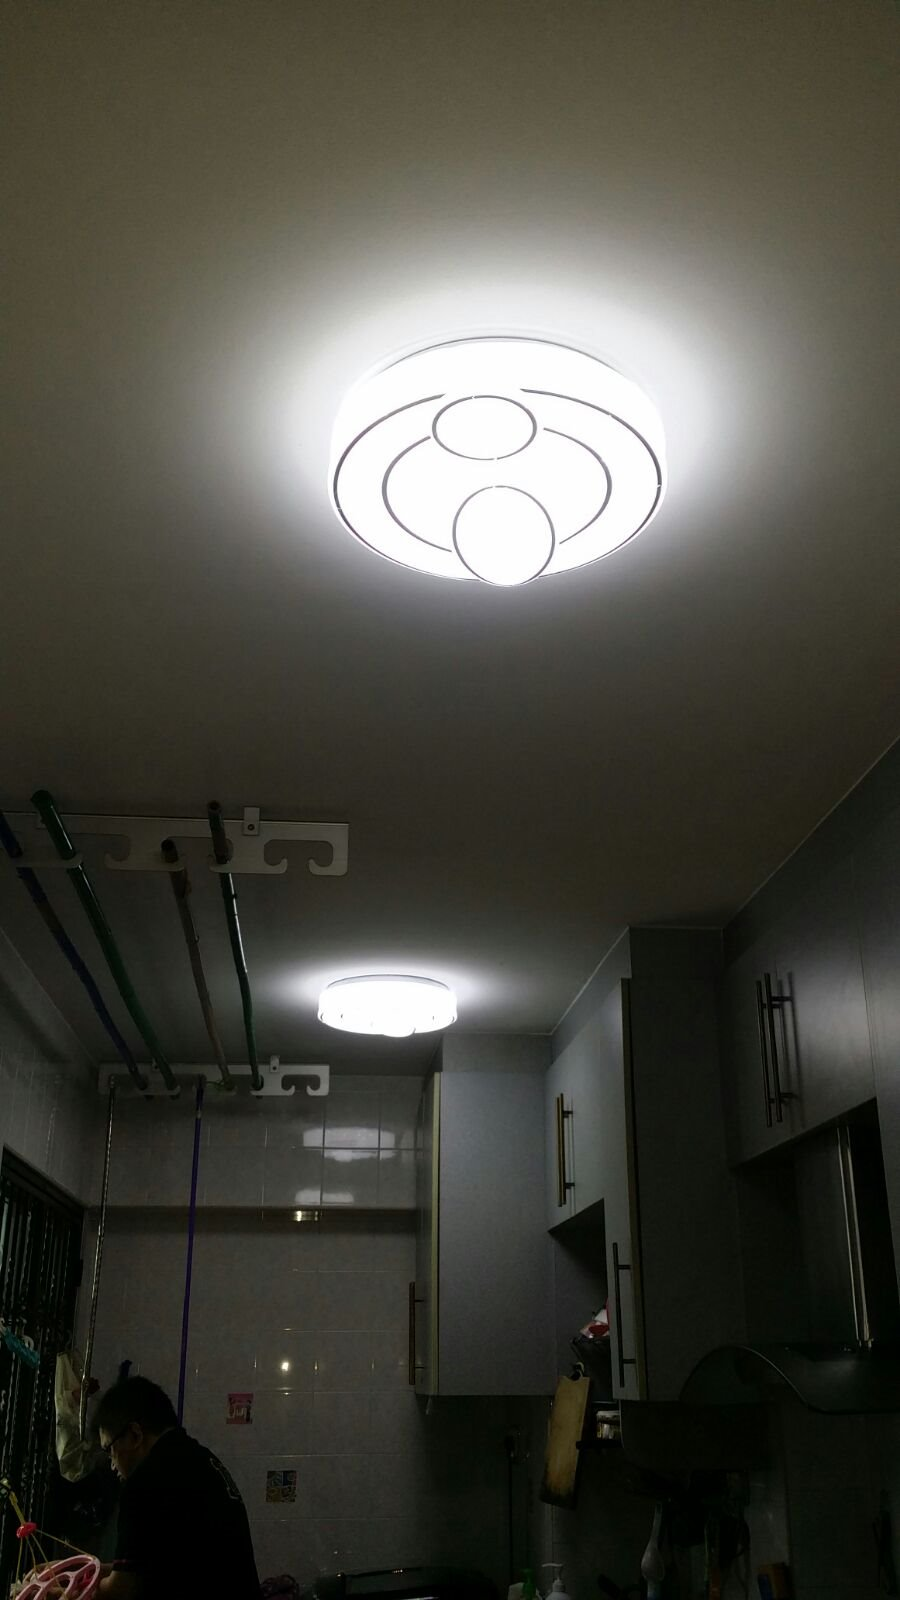 IMG-20171230-WA0025 - Ceiling light